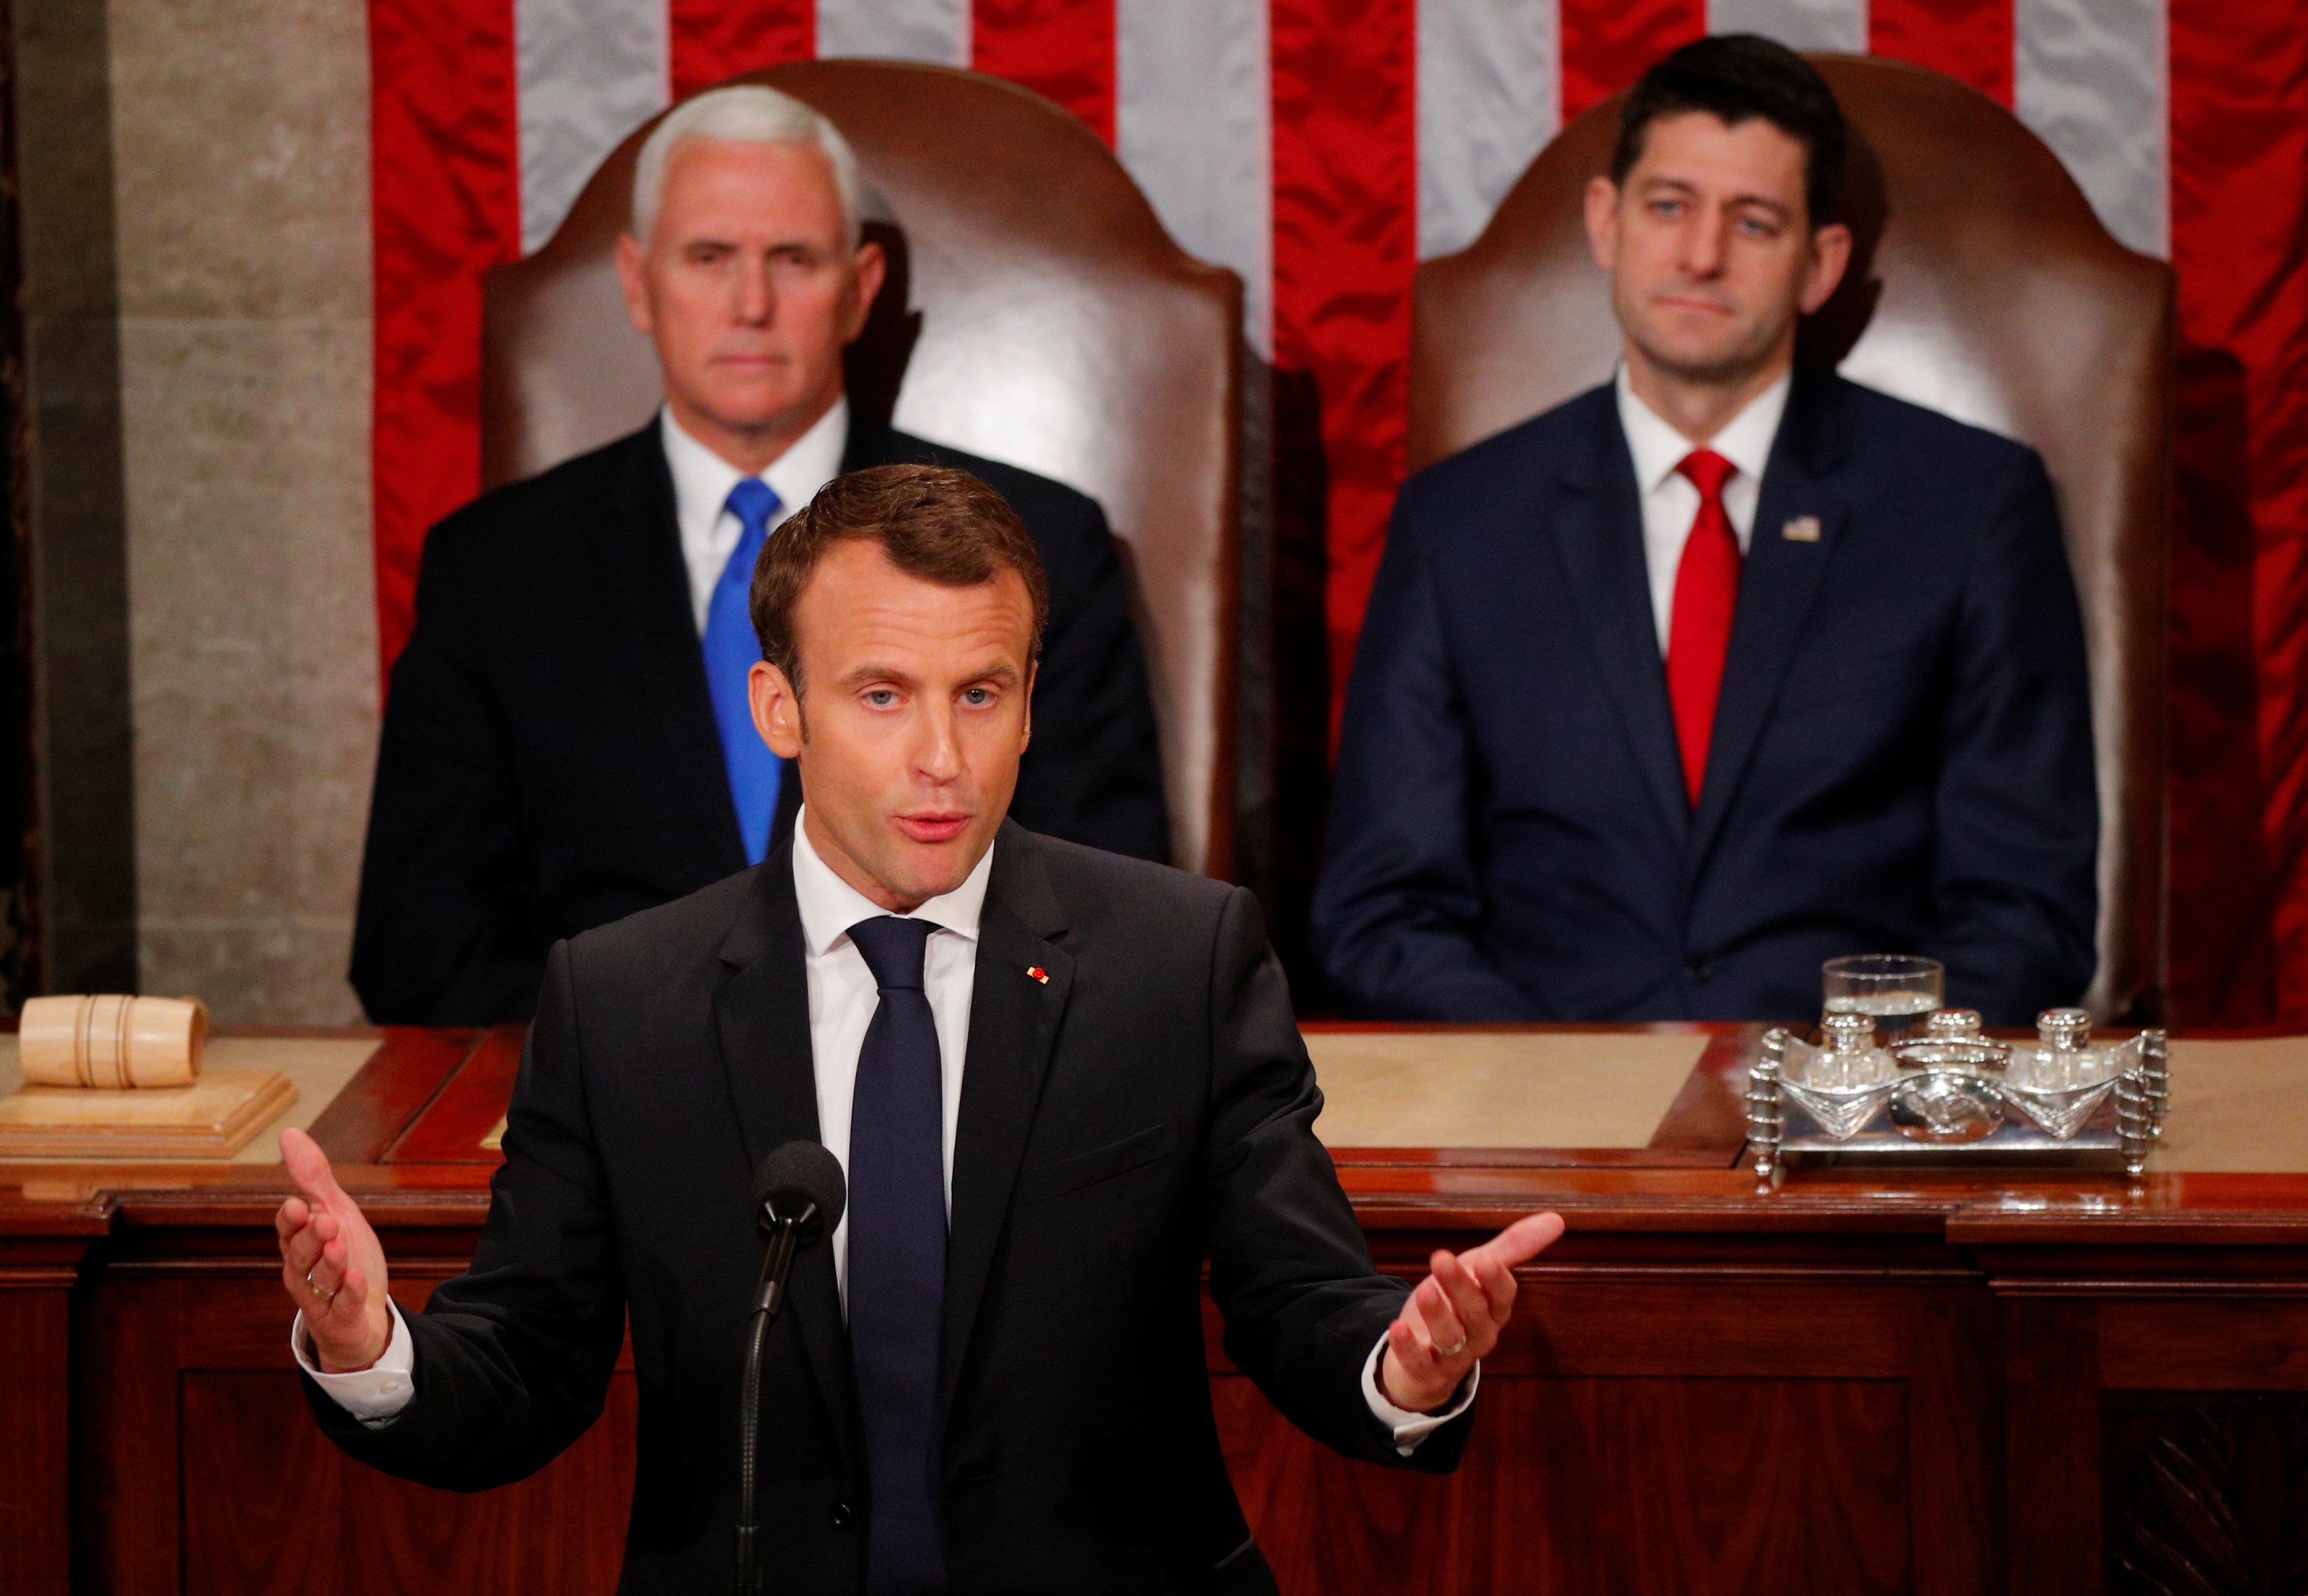 Macron Urges Congress To Get Serious On Climate Change In Jab At Trump: 'There Is No Planet